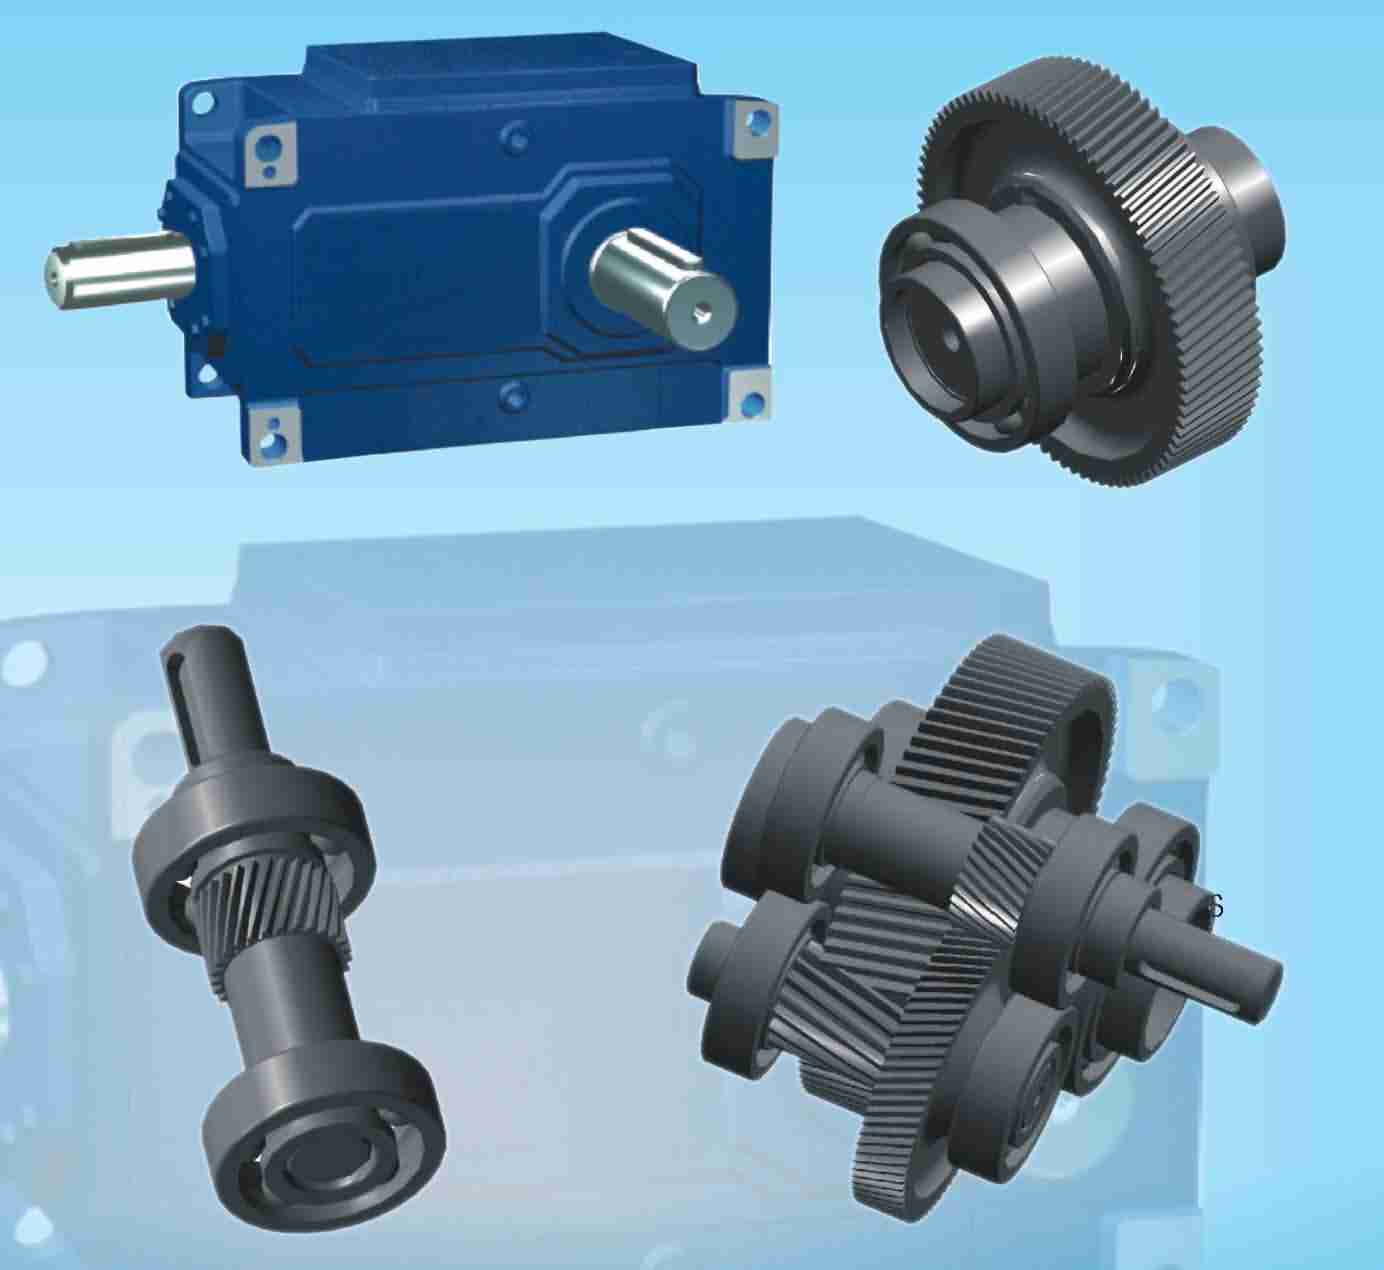 speed reducers, in-line helical gear speed reducers, parallel shaft helical gear reducers, helical bevel reducers, helical worm gear reducers, agricultural gearboxes, tractor gearboxes